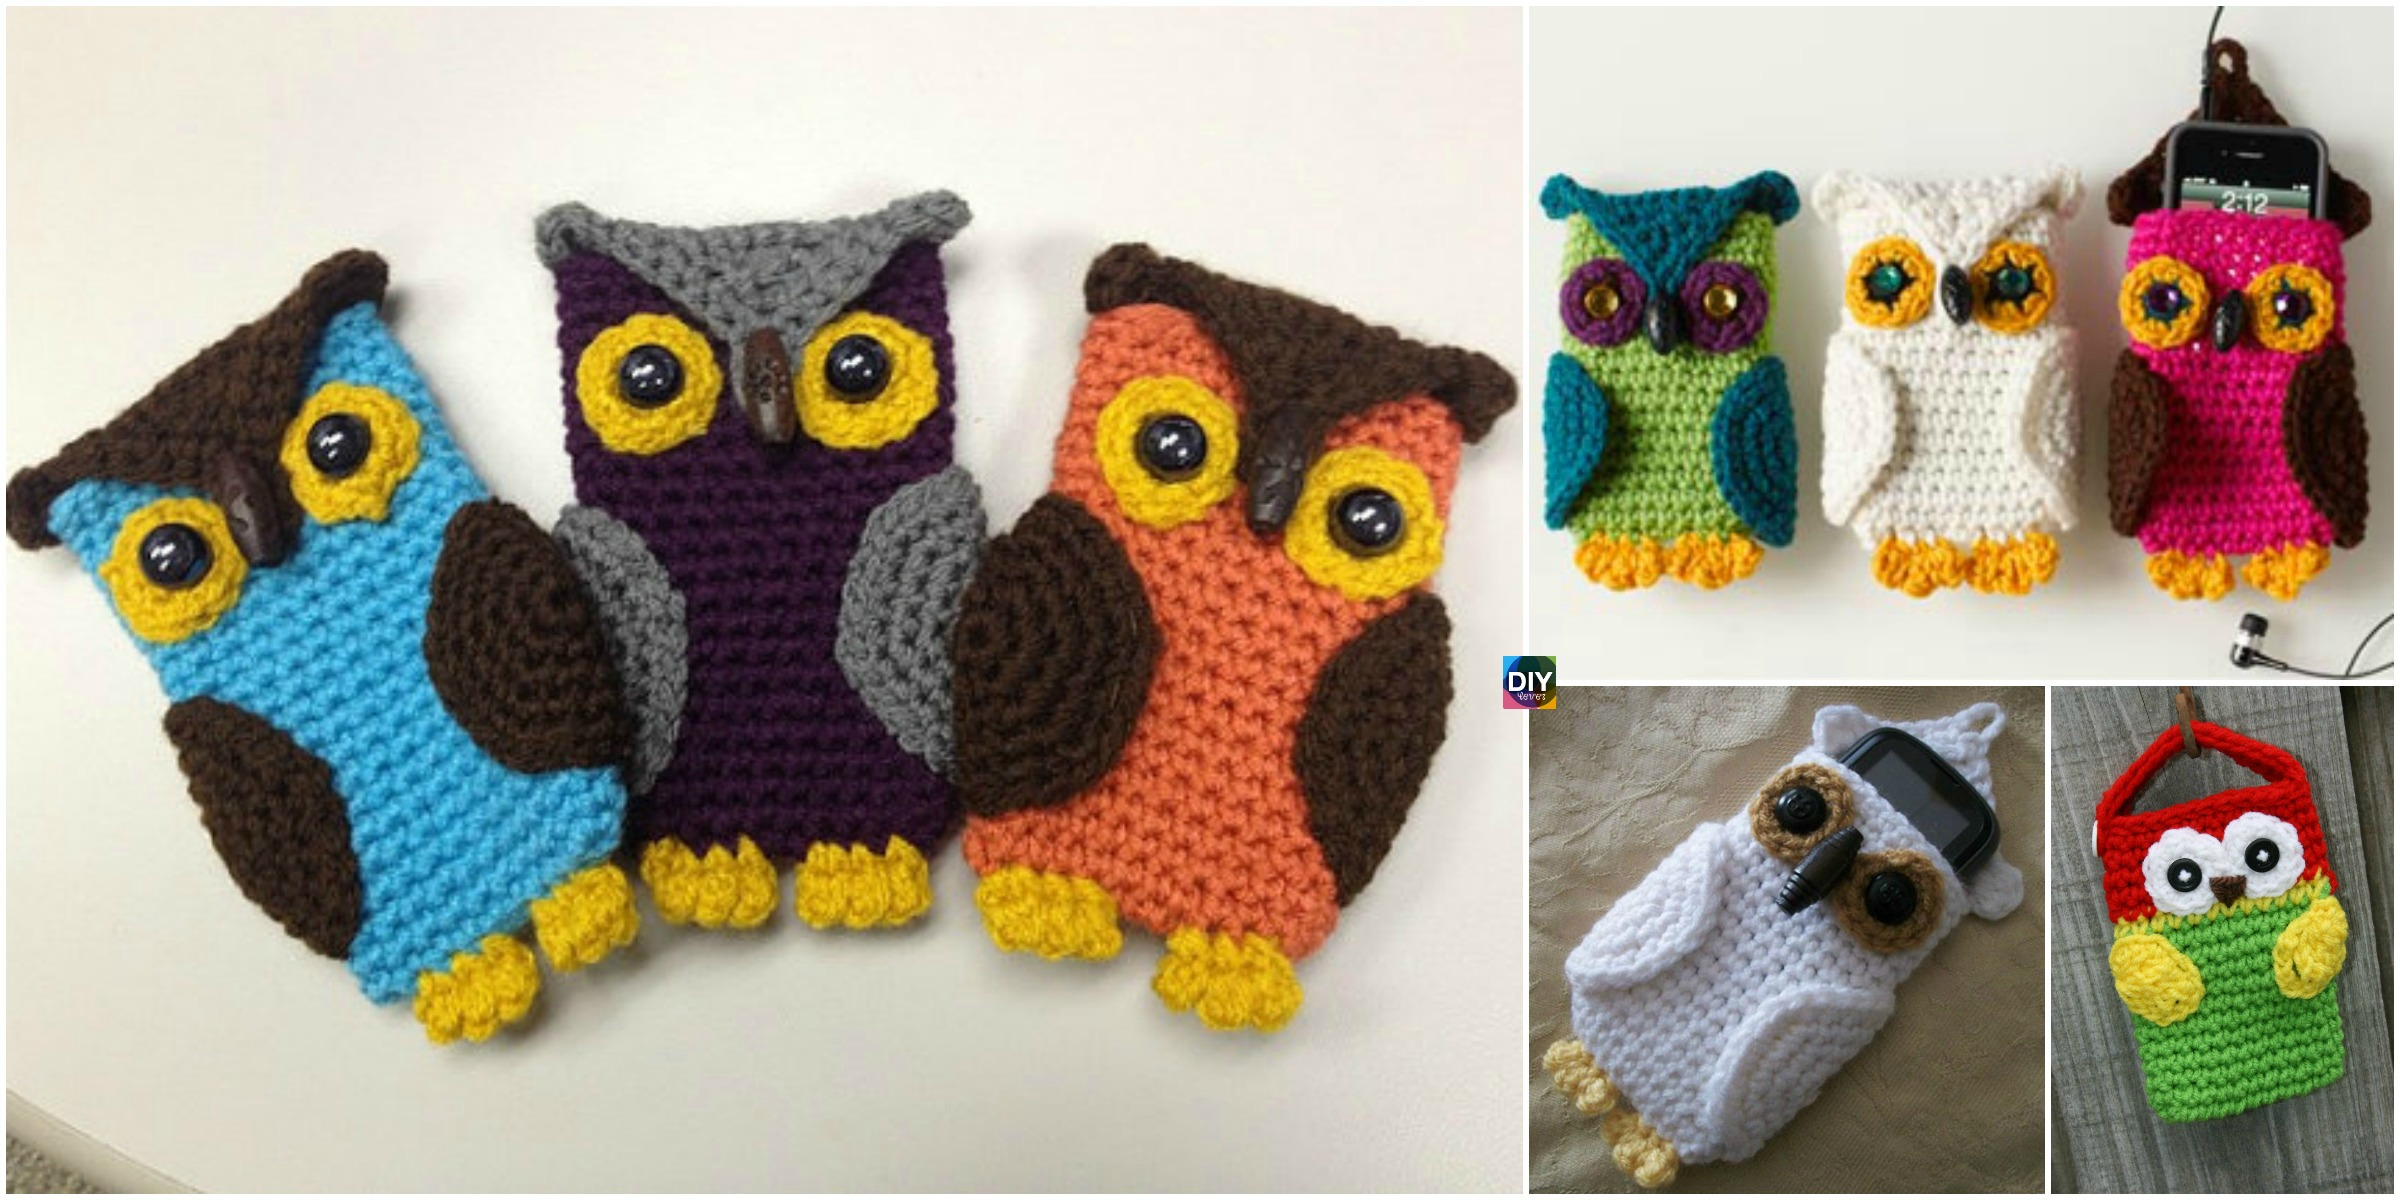 Crochet Owl Cell Phone Cozy -Free Pattern - DIY 4 EVER